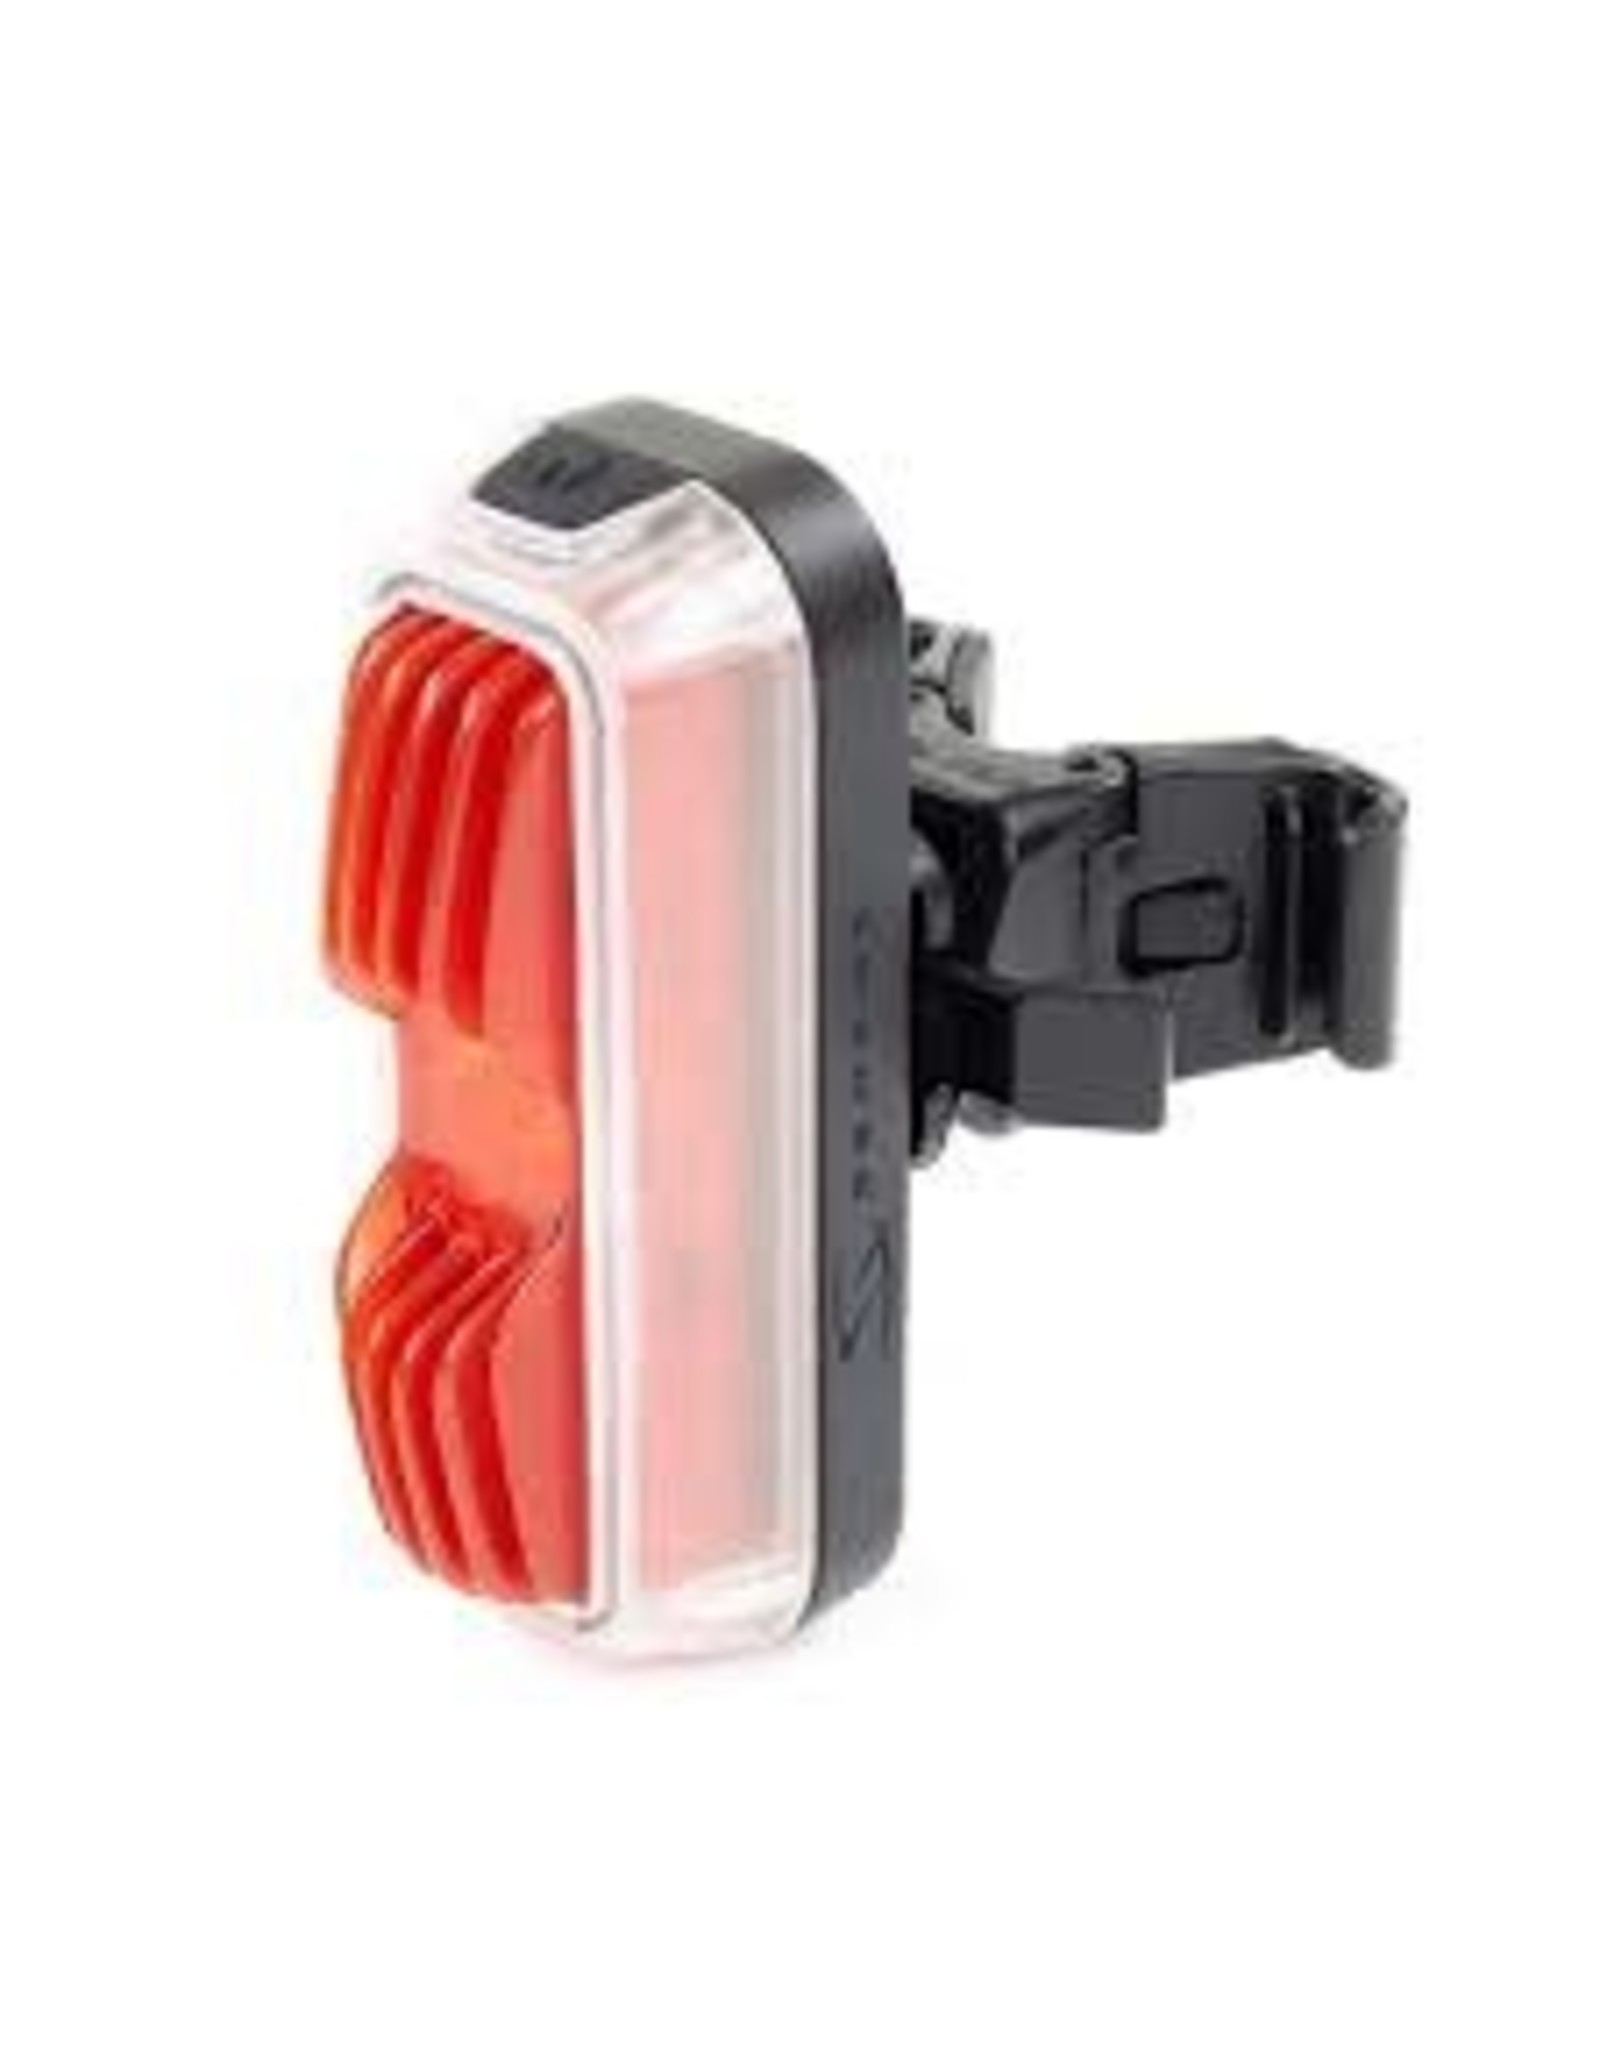 Serfas Light Serfas Vulcan 350 Tail Light